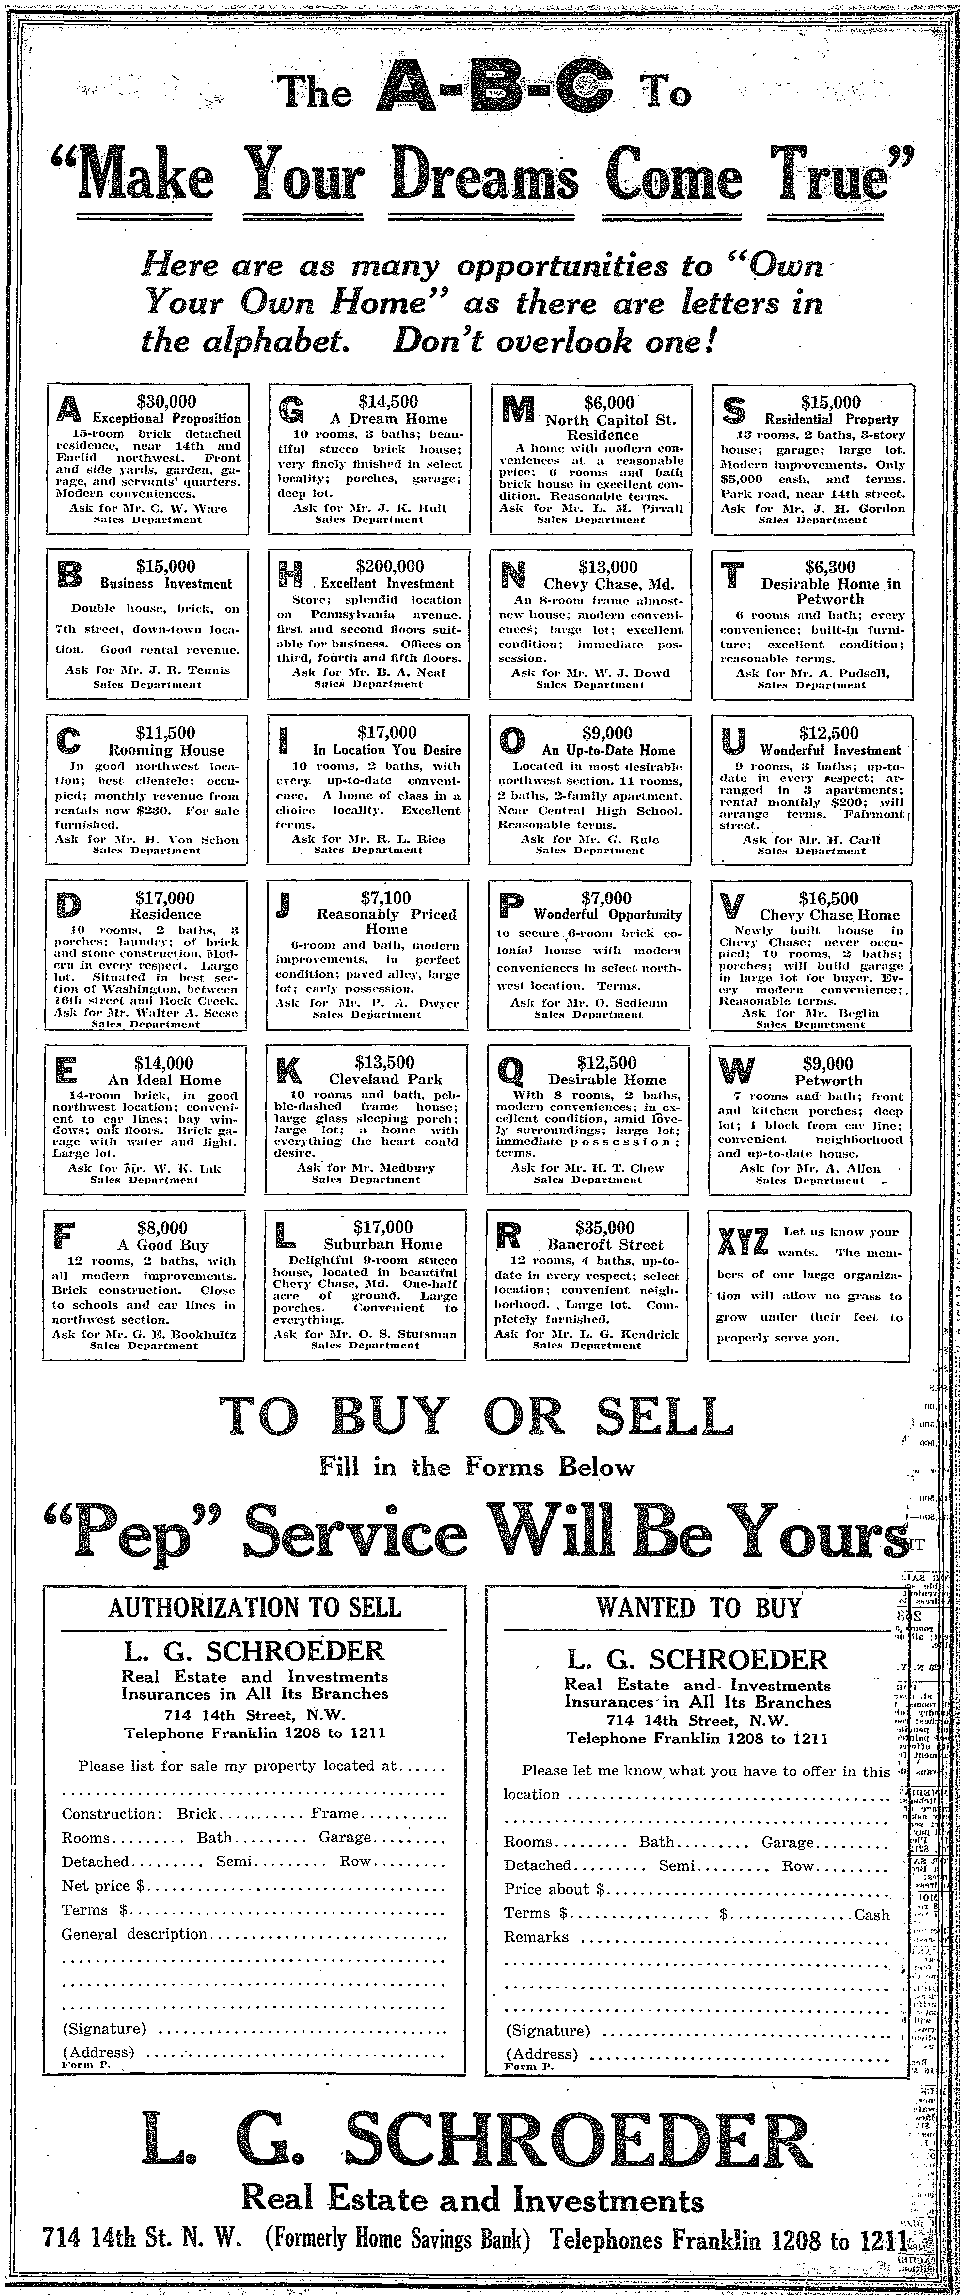 L.G. Schroder real estate advertisement - August 10th, 1919 (Washington Post)